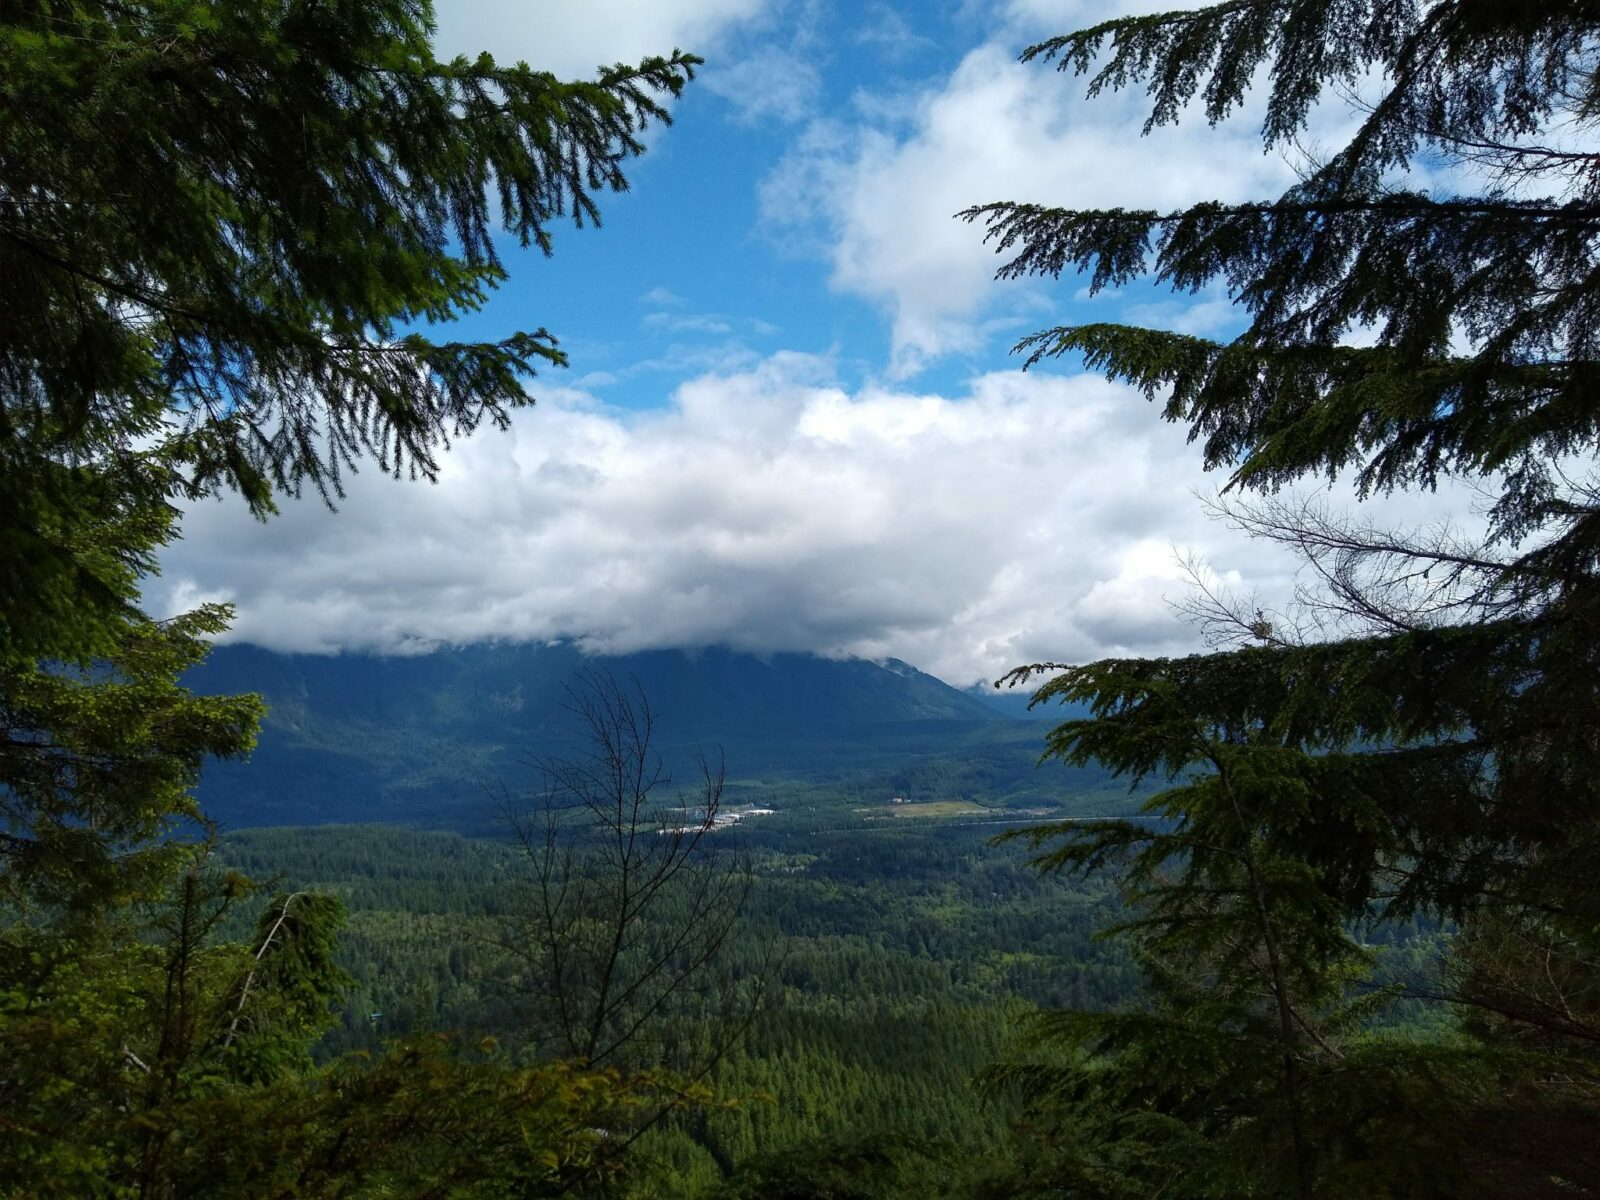 A partially clouded view from Cedar Butte,  with a distant hillside and a valley below. it is framed by two evergreen trees.